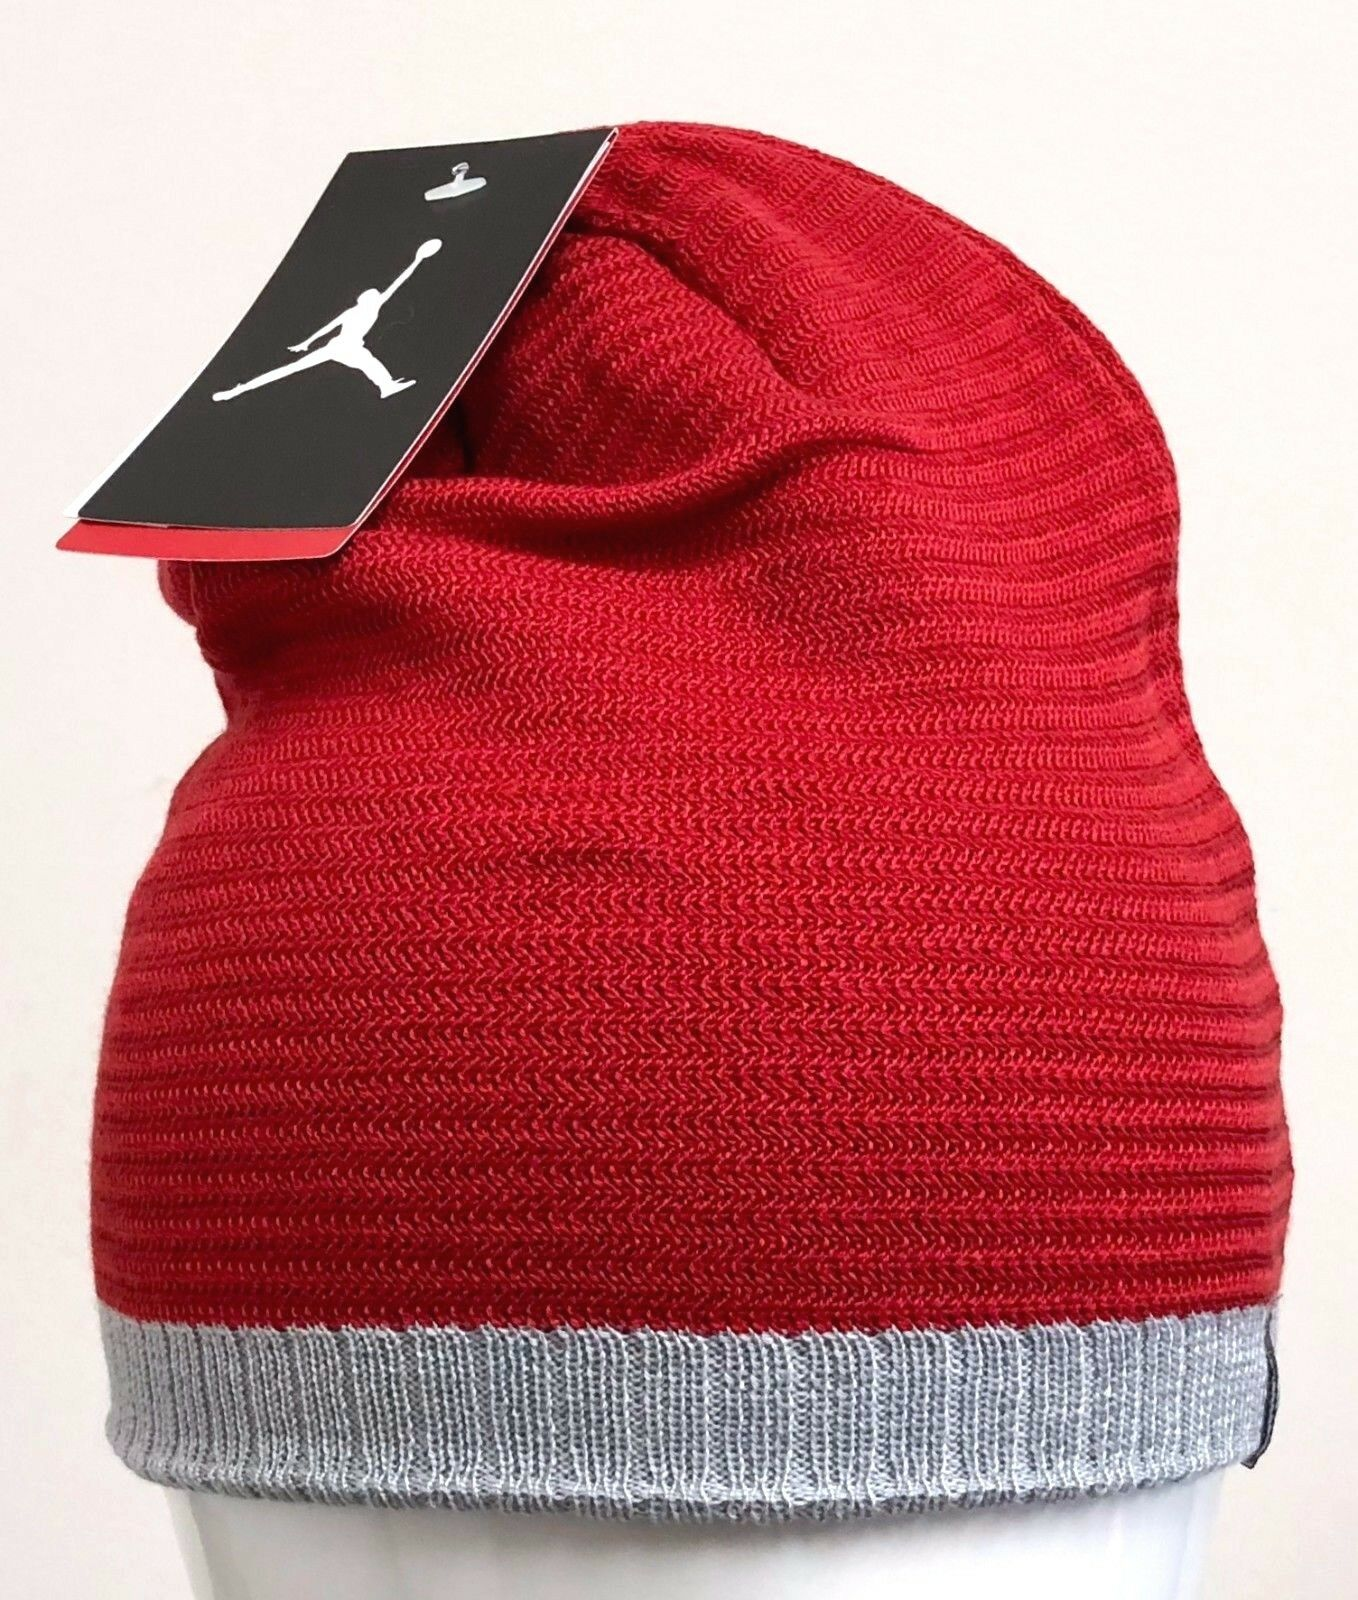 f323f25011a ... nike jordan jumpman beanie mens skull caps concord sports outdoors jpg  1254x1500 jordan toboggan hat norway jordan beanie gym red wolf grey grey  red ...